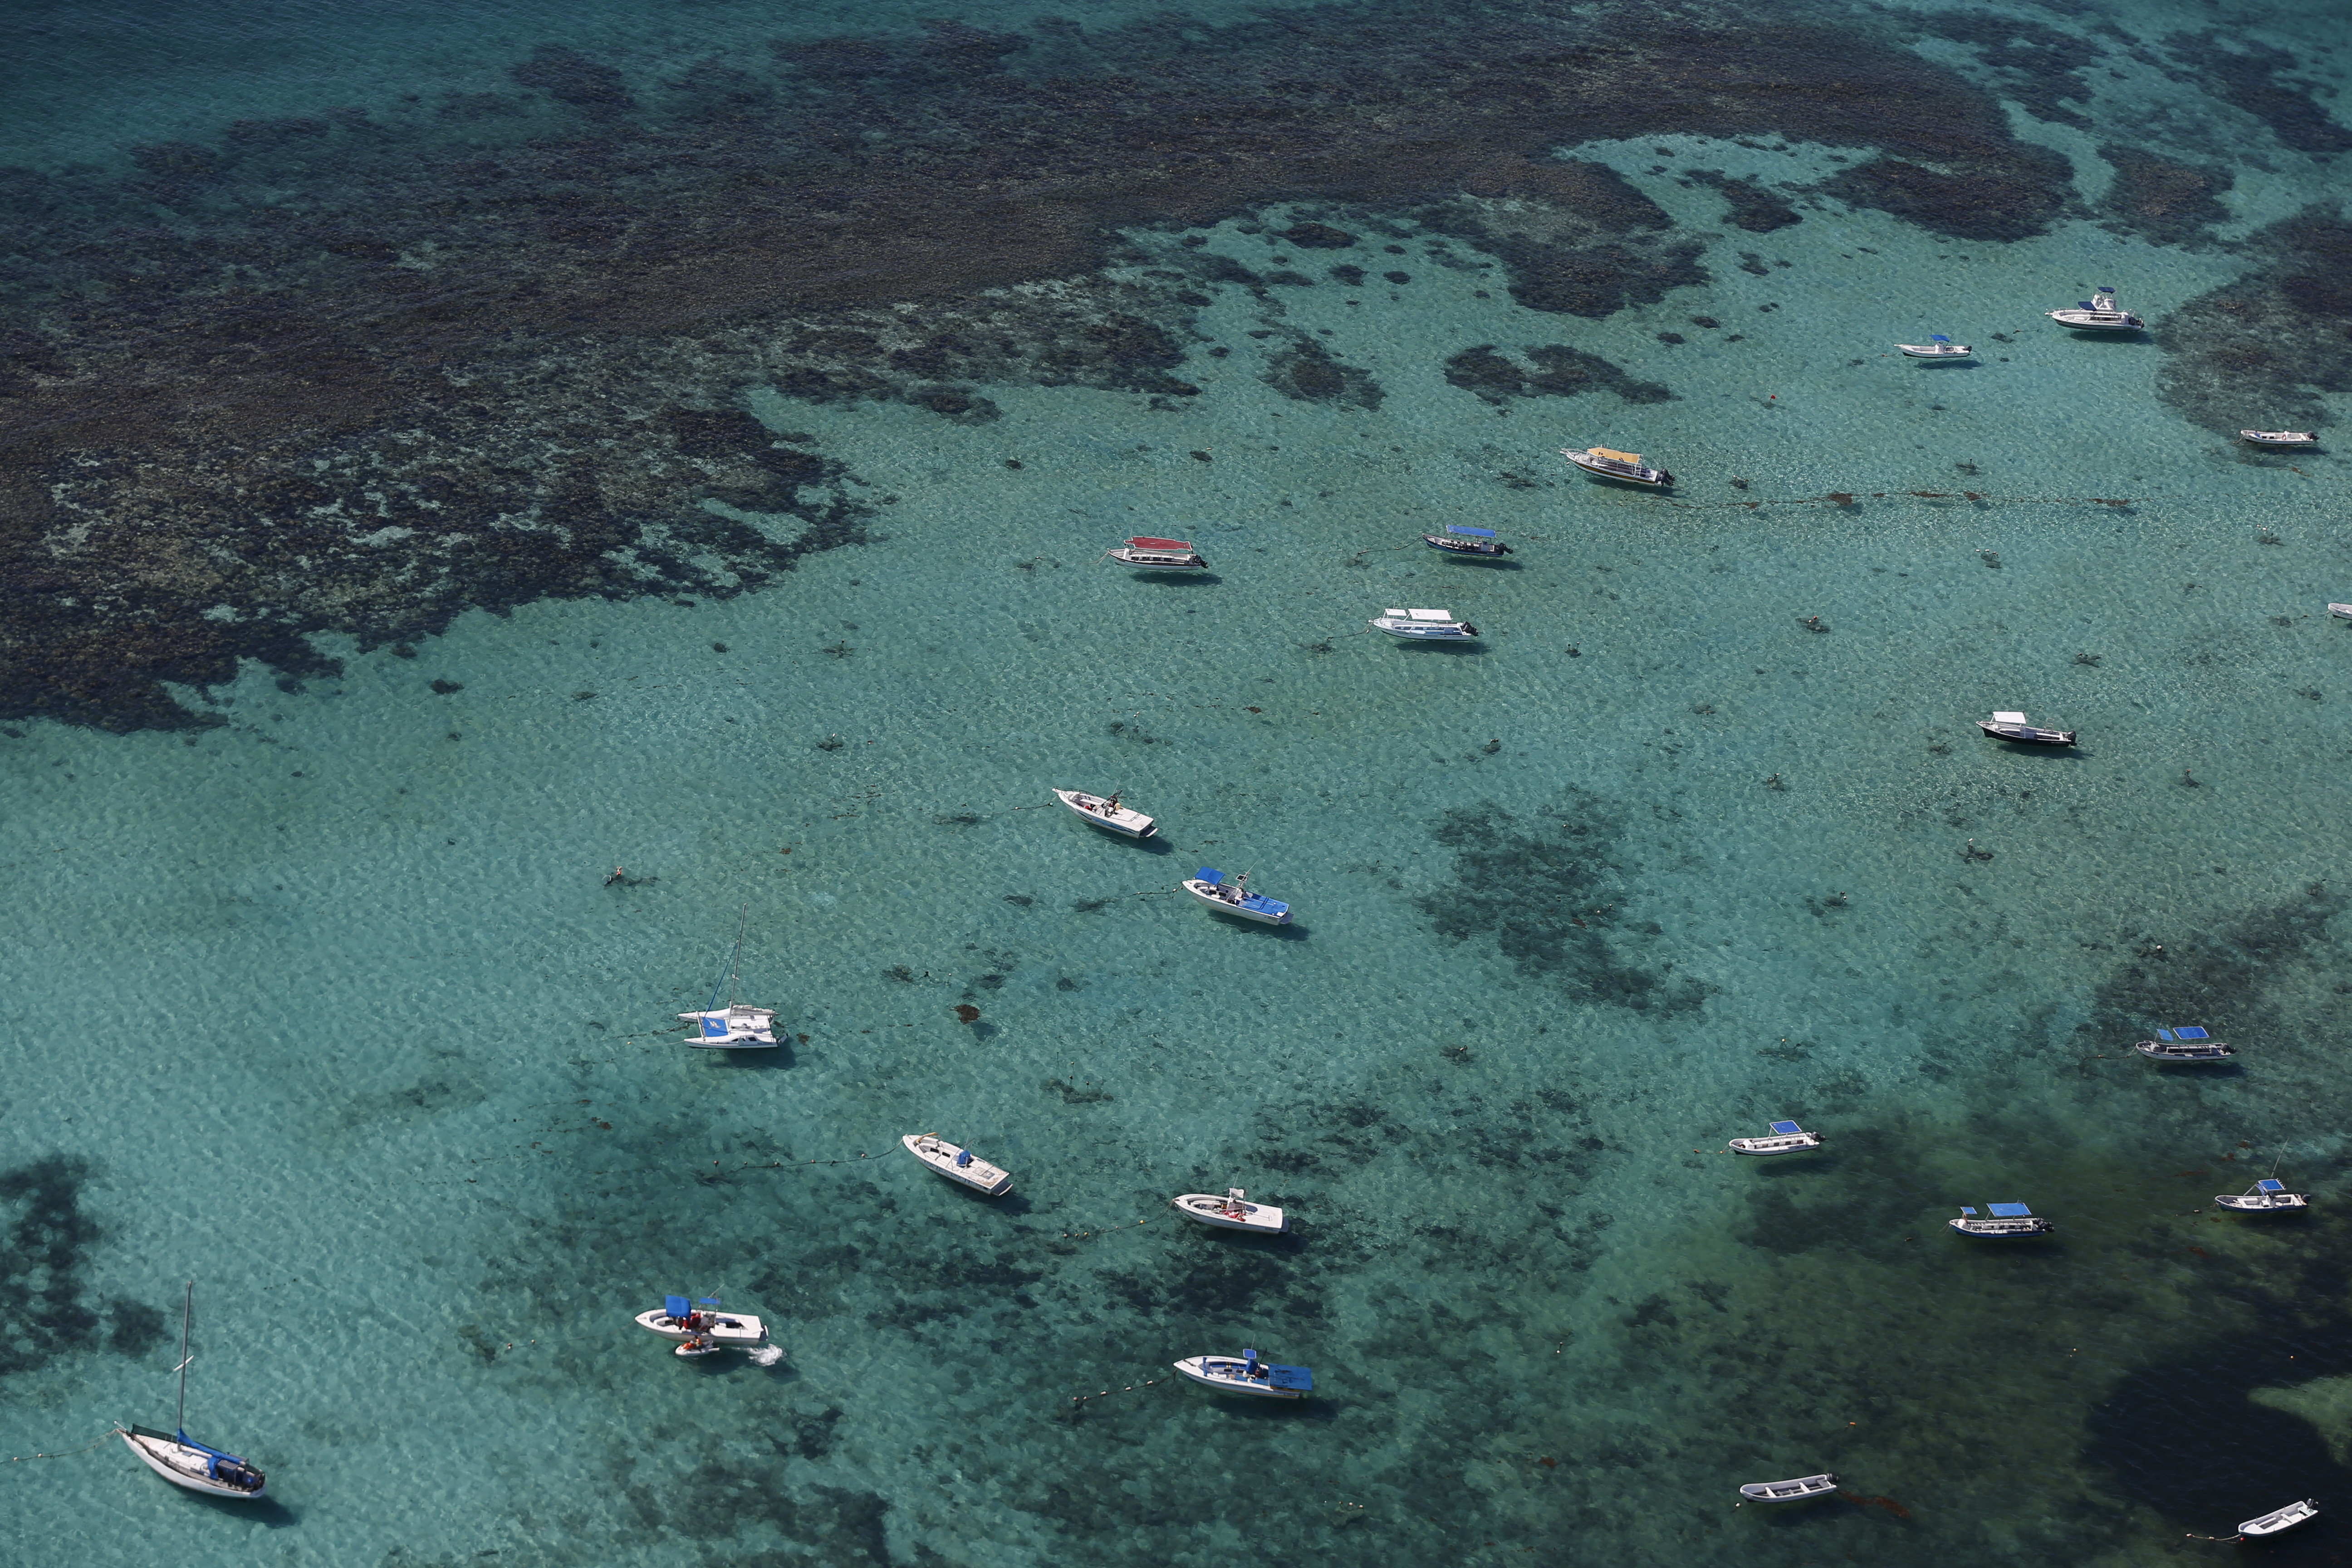 An aerial view of boats near coral reefs and Sargassum algae in Cancun, August 13, 2015. Cancun's transformation in the 1970s from a small Caribbean fishing village into a strip of nightclubs and high-rise hotels has reduced biodiversity and polluted water resources as infrastructure struggles to keep up.  REUTERS/Edgard Garrido TPX IMAGES OF THE DAYPICTURE 4 OF 34 FOR WIDER IMAGE STORY 'EARTHPRINTS: CANCUN'SEARCH 'EARTHPRINTS CANCUN' FOR ALL IMAGES      TPX IMAGES OF THE DAY      - GF20000055991